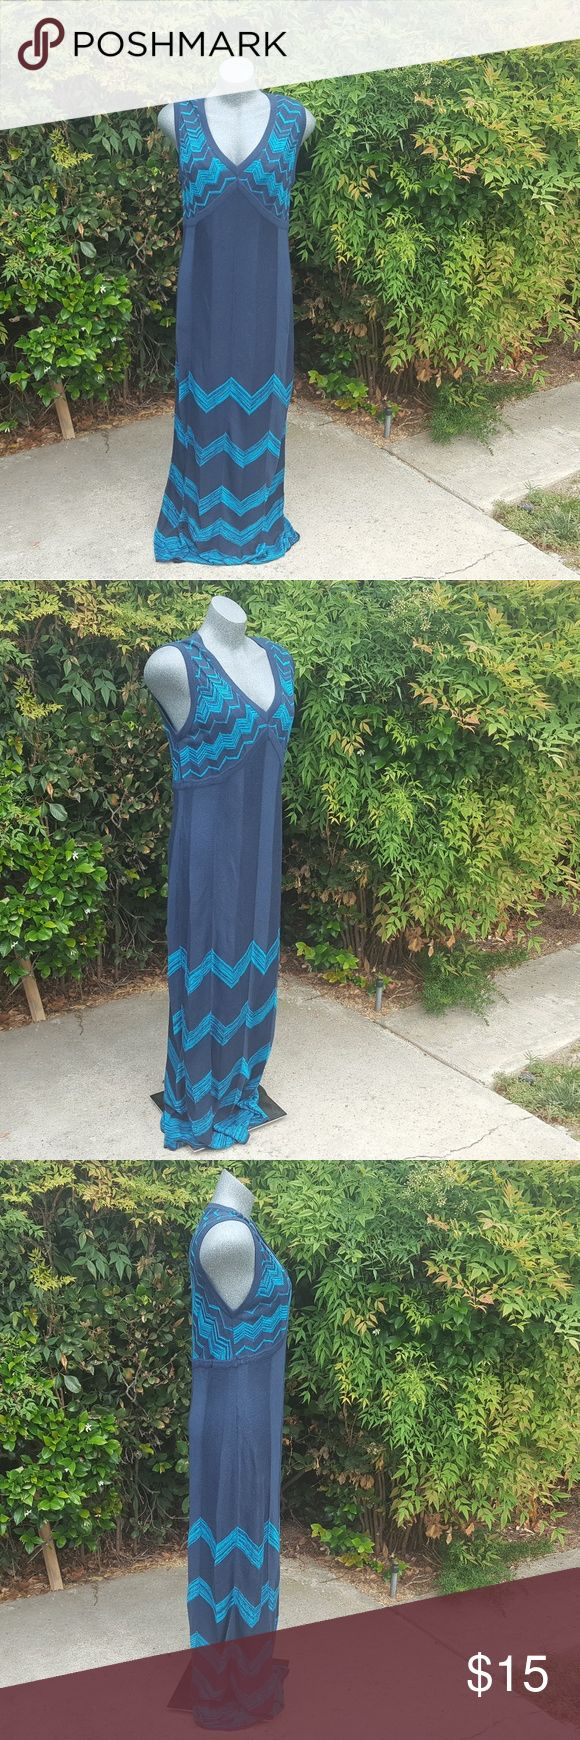 """Missoni Knit Blue Maxi Dress Chevron Size Large Knit dress by Missoni for Target. Two shades of blue, teal & navy. Fabric has lots if stretch.  Navy blue slip is attached.  Chevron print.  See last photos for fabric content and care instructions.  No stains or snagsz.  Please let me know if you have any questions.   Size: Large Chest circumference: 35"""" Waist circumference: 35"""" Sweep circumference: 53"""" Length: 58"""" Strap width: 4"""" Sleeve opening: 10"""" Missoni Dresses Maxi"""